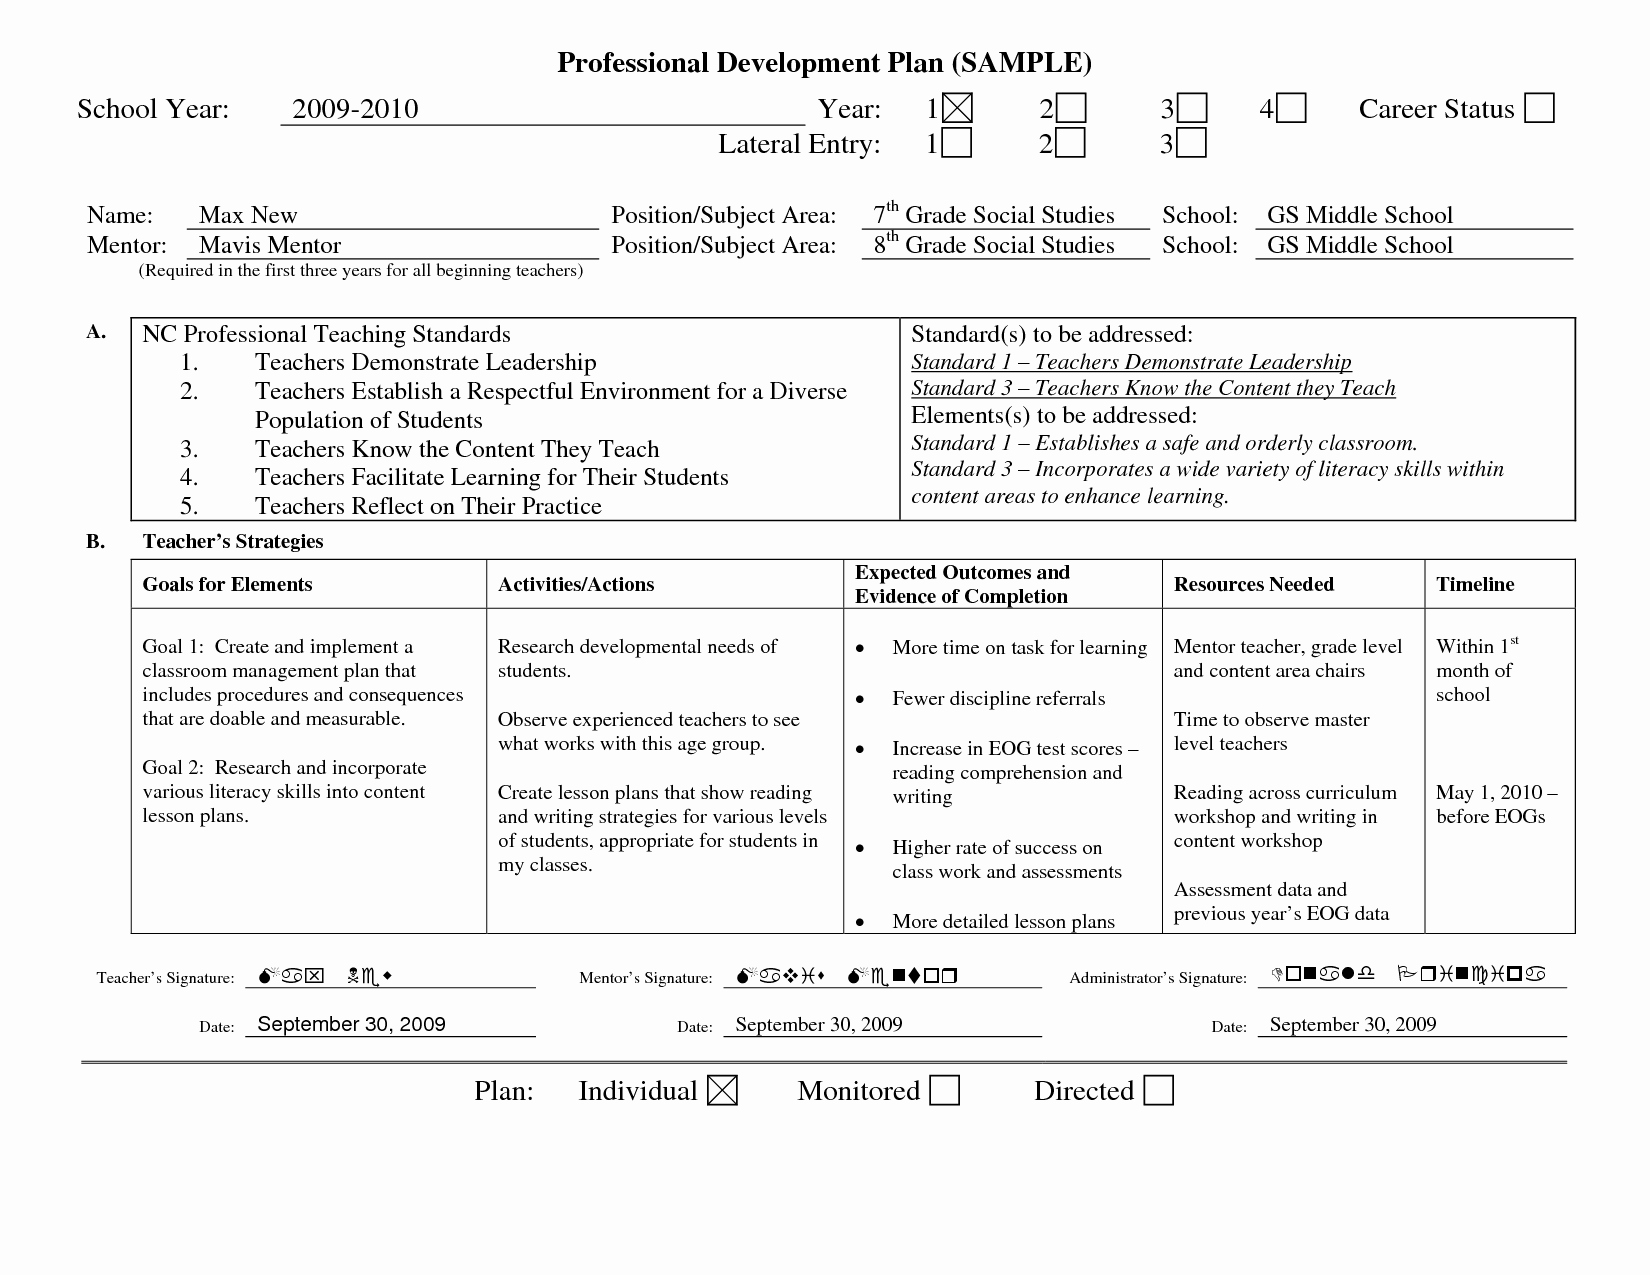 Personal Learning Plan Template New Professional Learning Plan Examples Google Search Professional Development